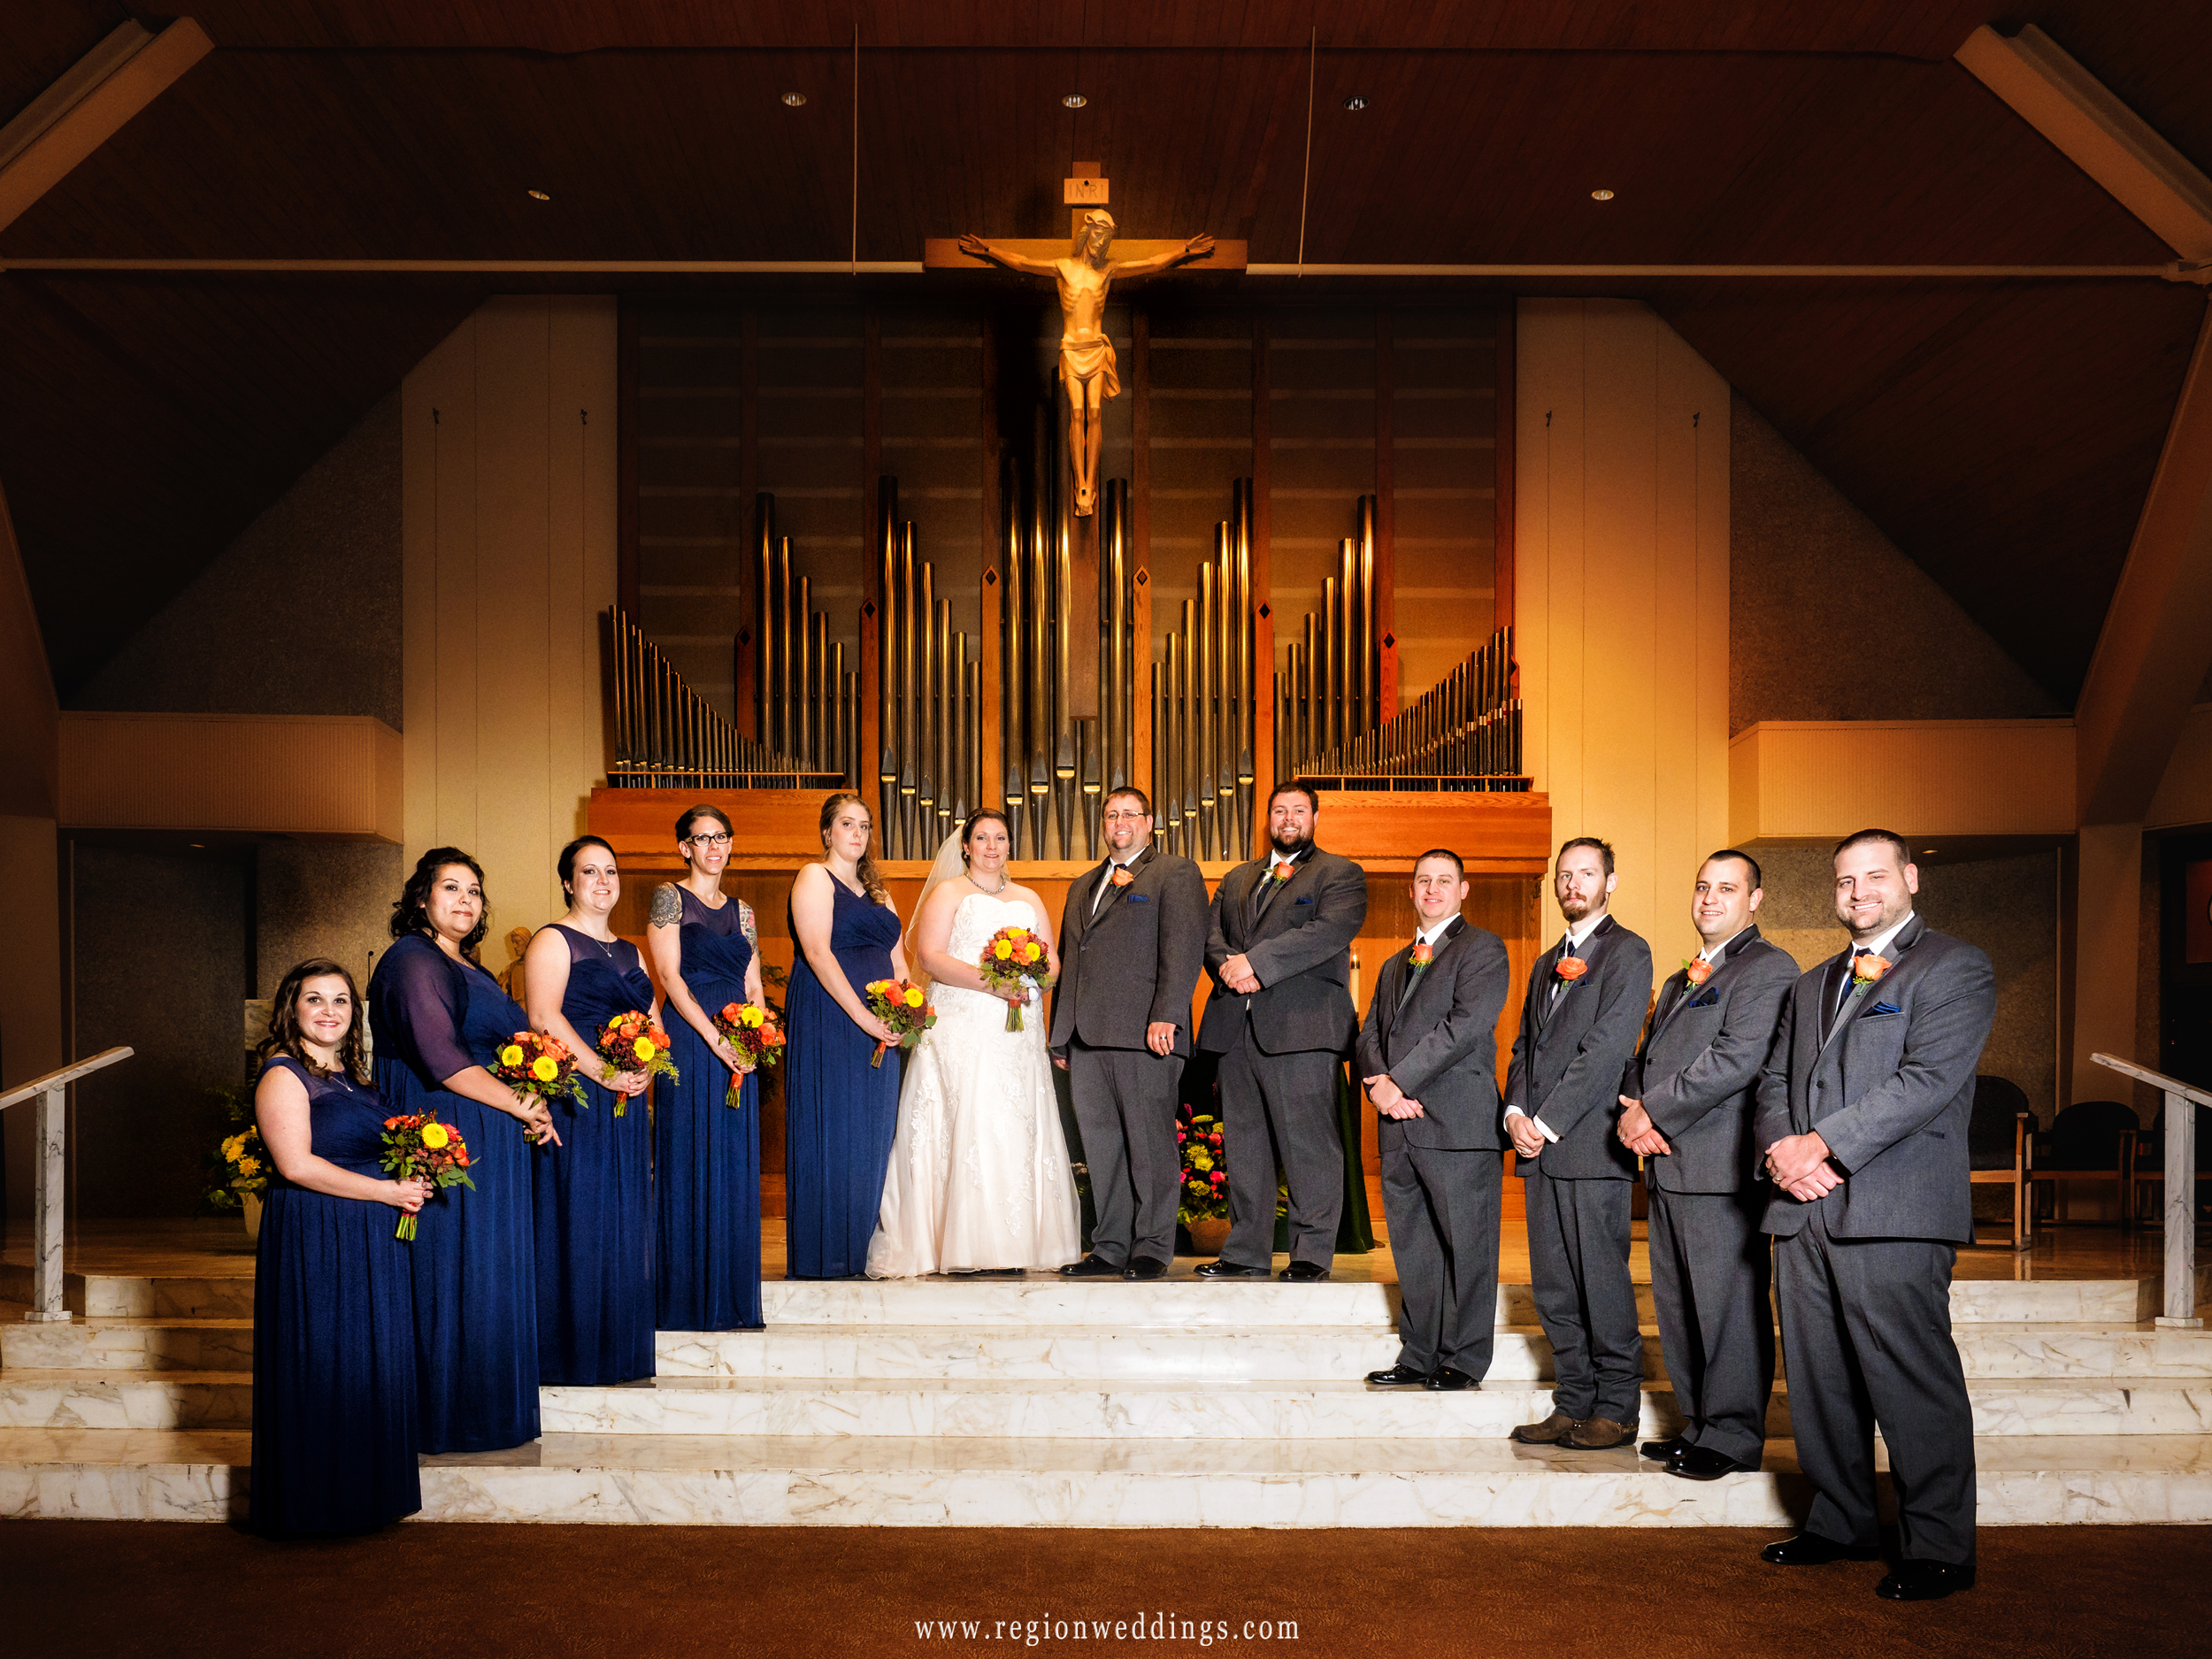 Wedding party on the altar at Saint Thomas More Church in Munster, Indiana.